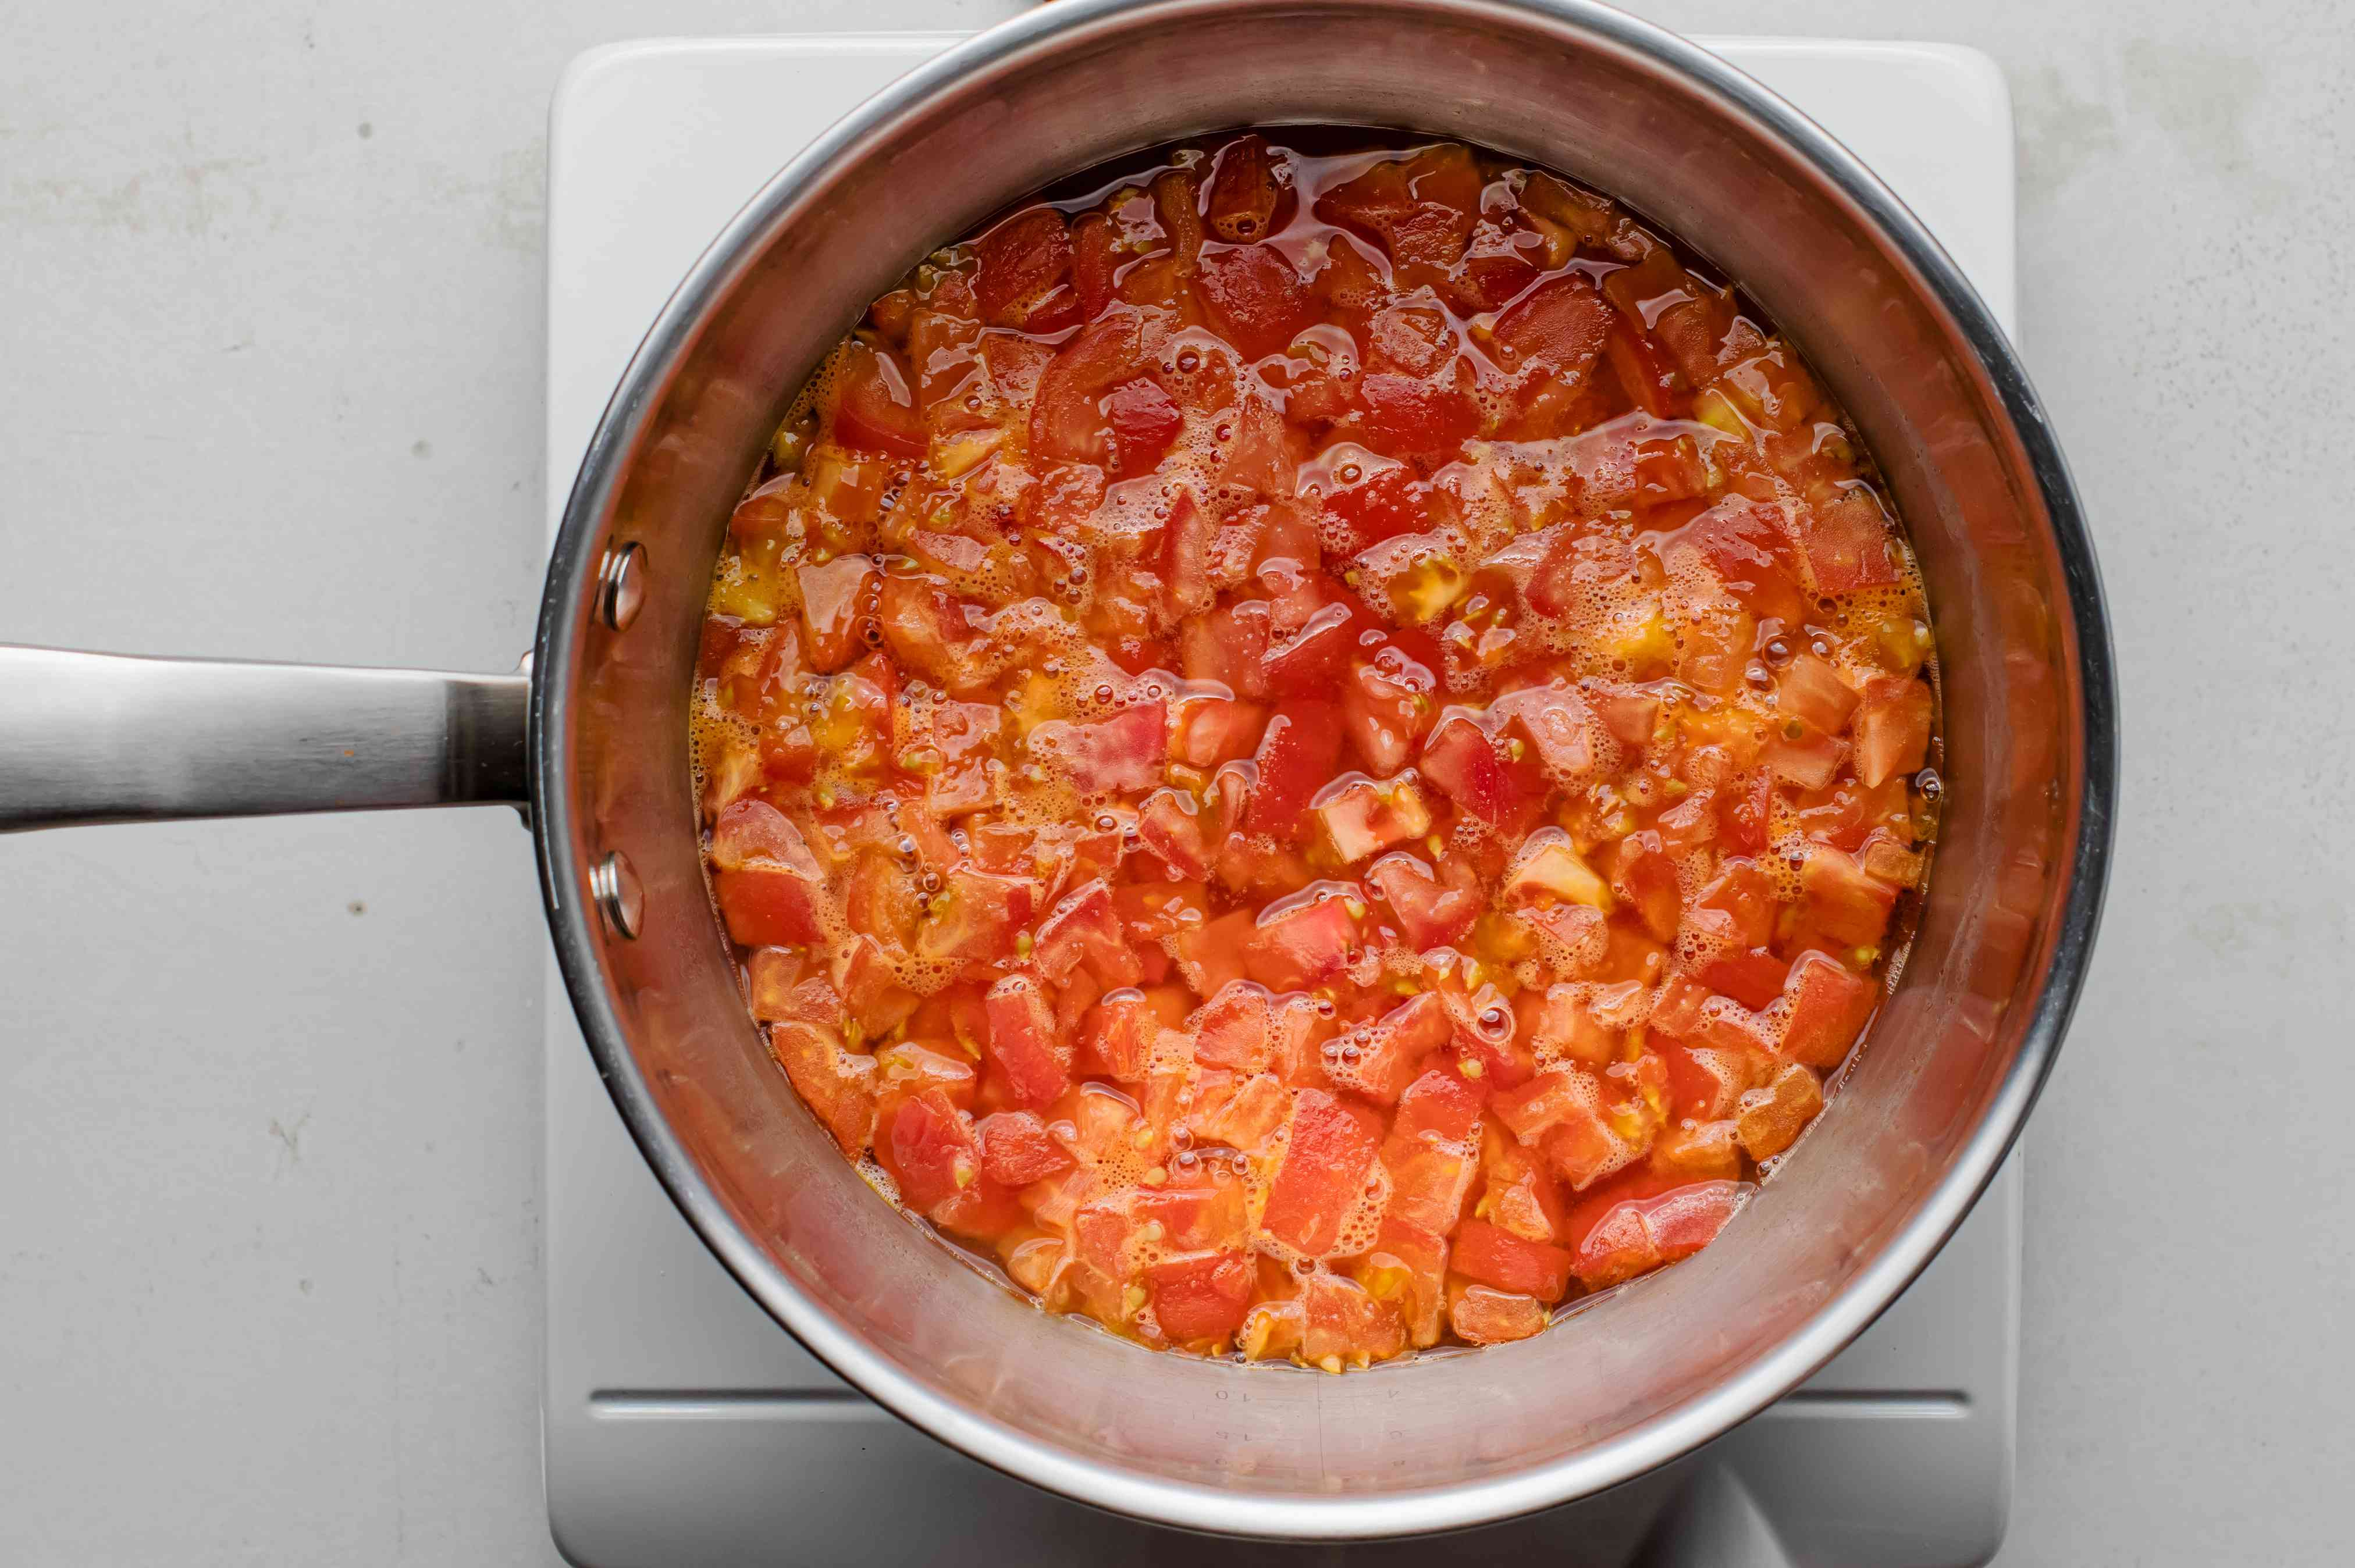 Tomatoes and chicken stock in a sauce pan on a burner